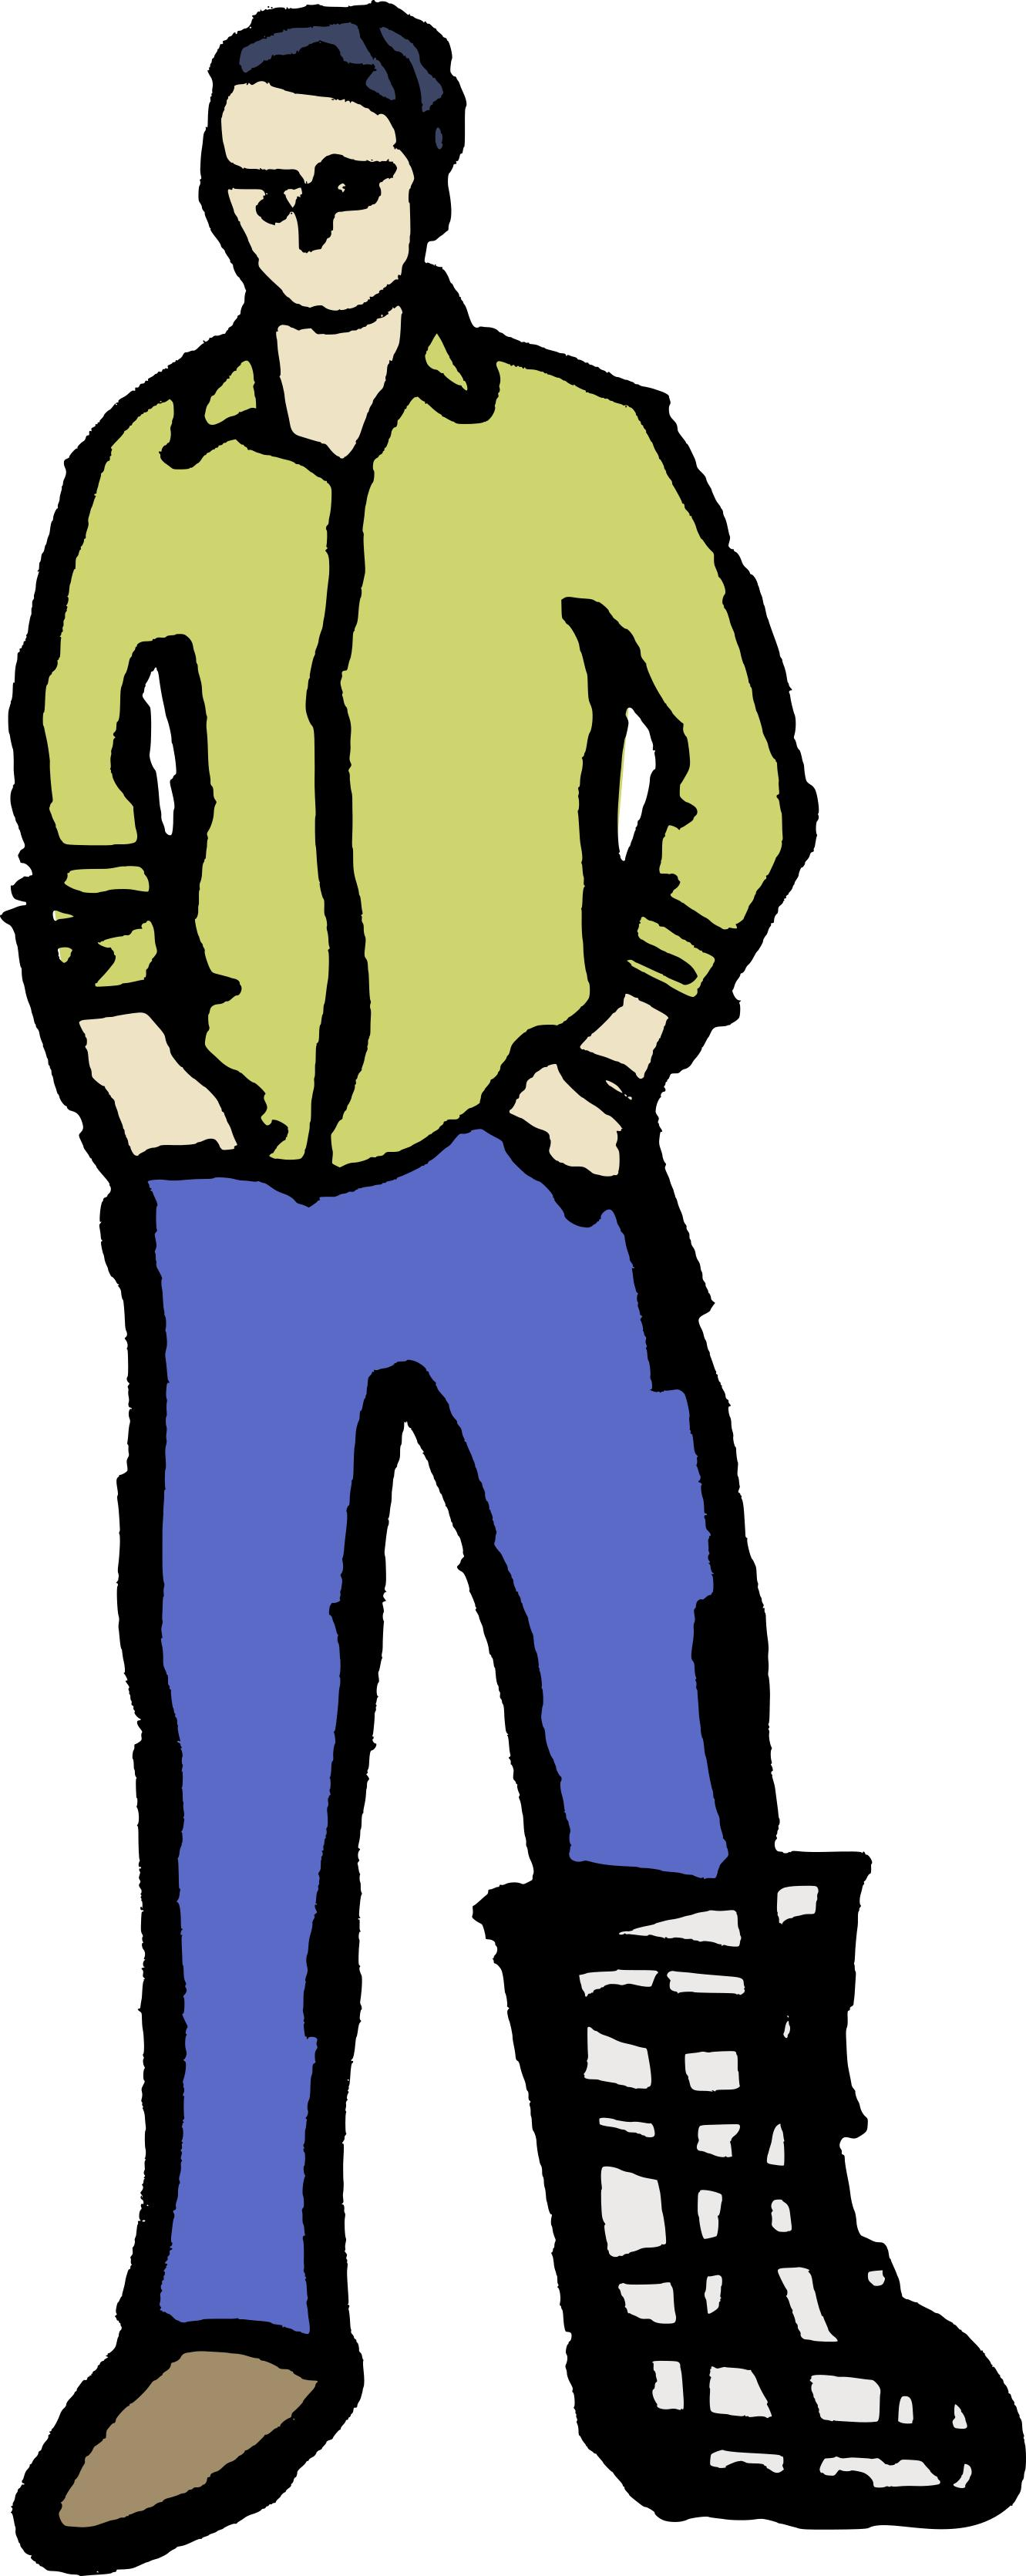 1331x3341 Cool Man In A Cast Clipart